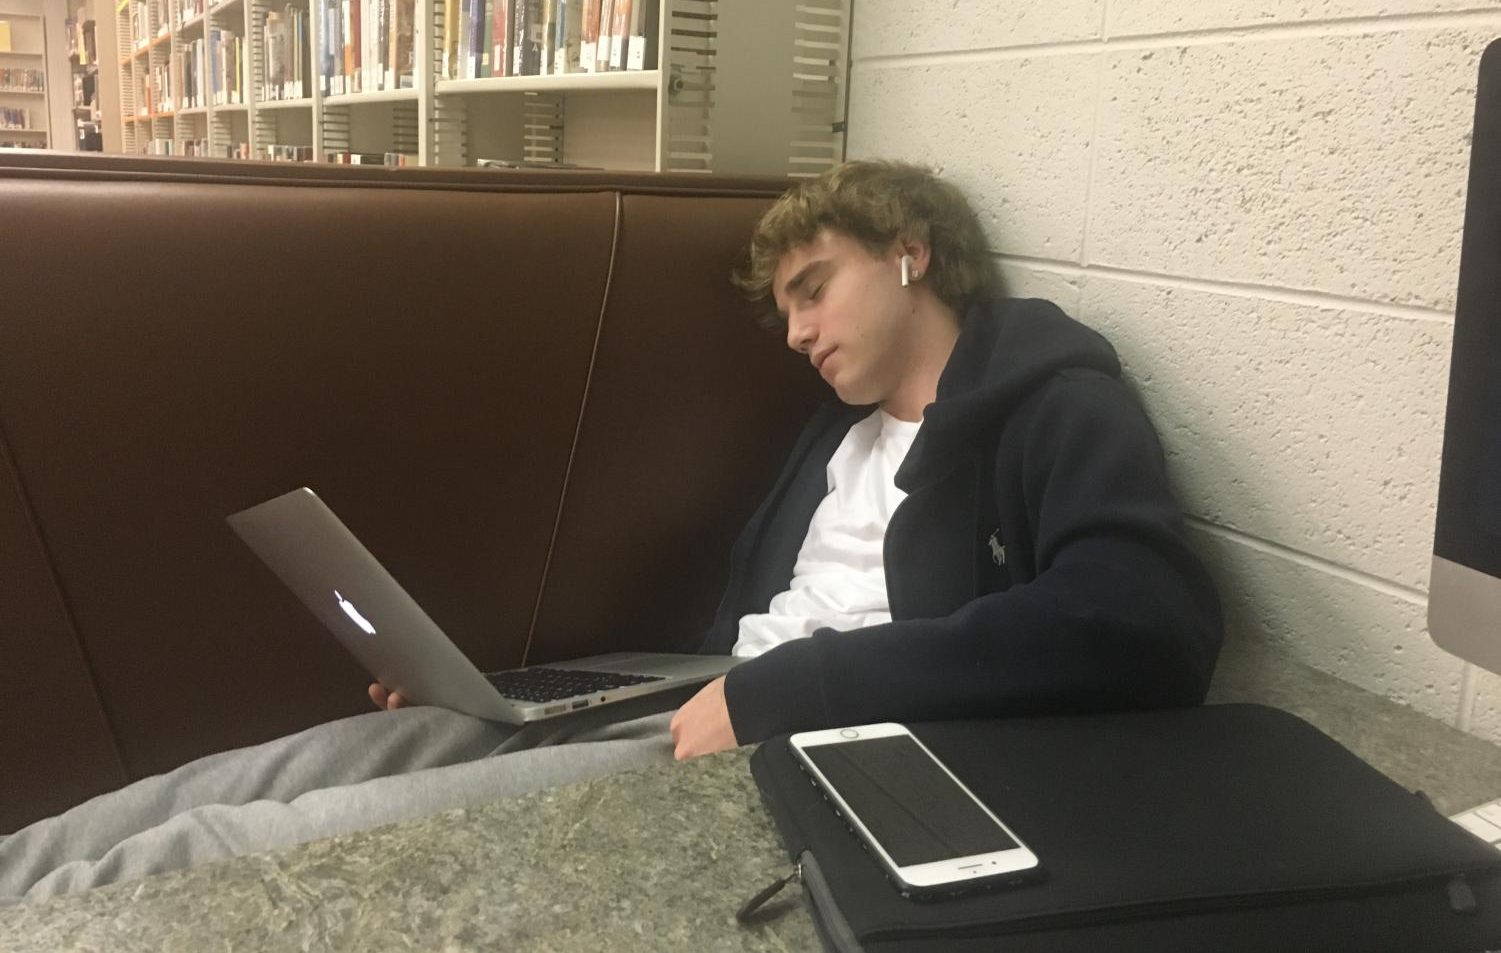 Friends Select Student sleeps in class while trying to finish work.